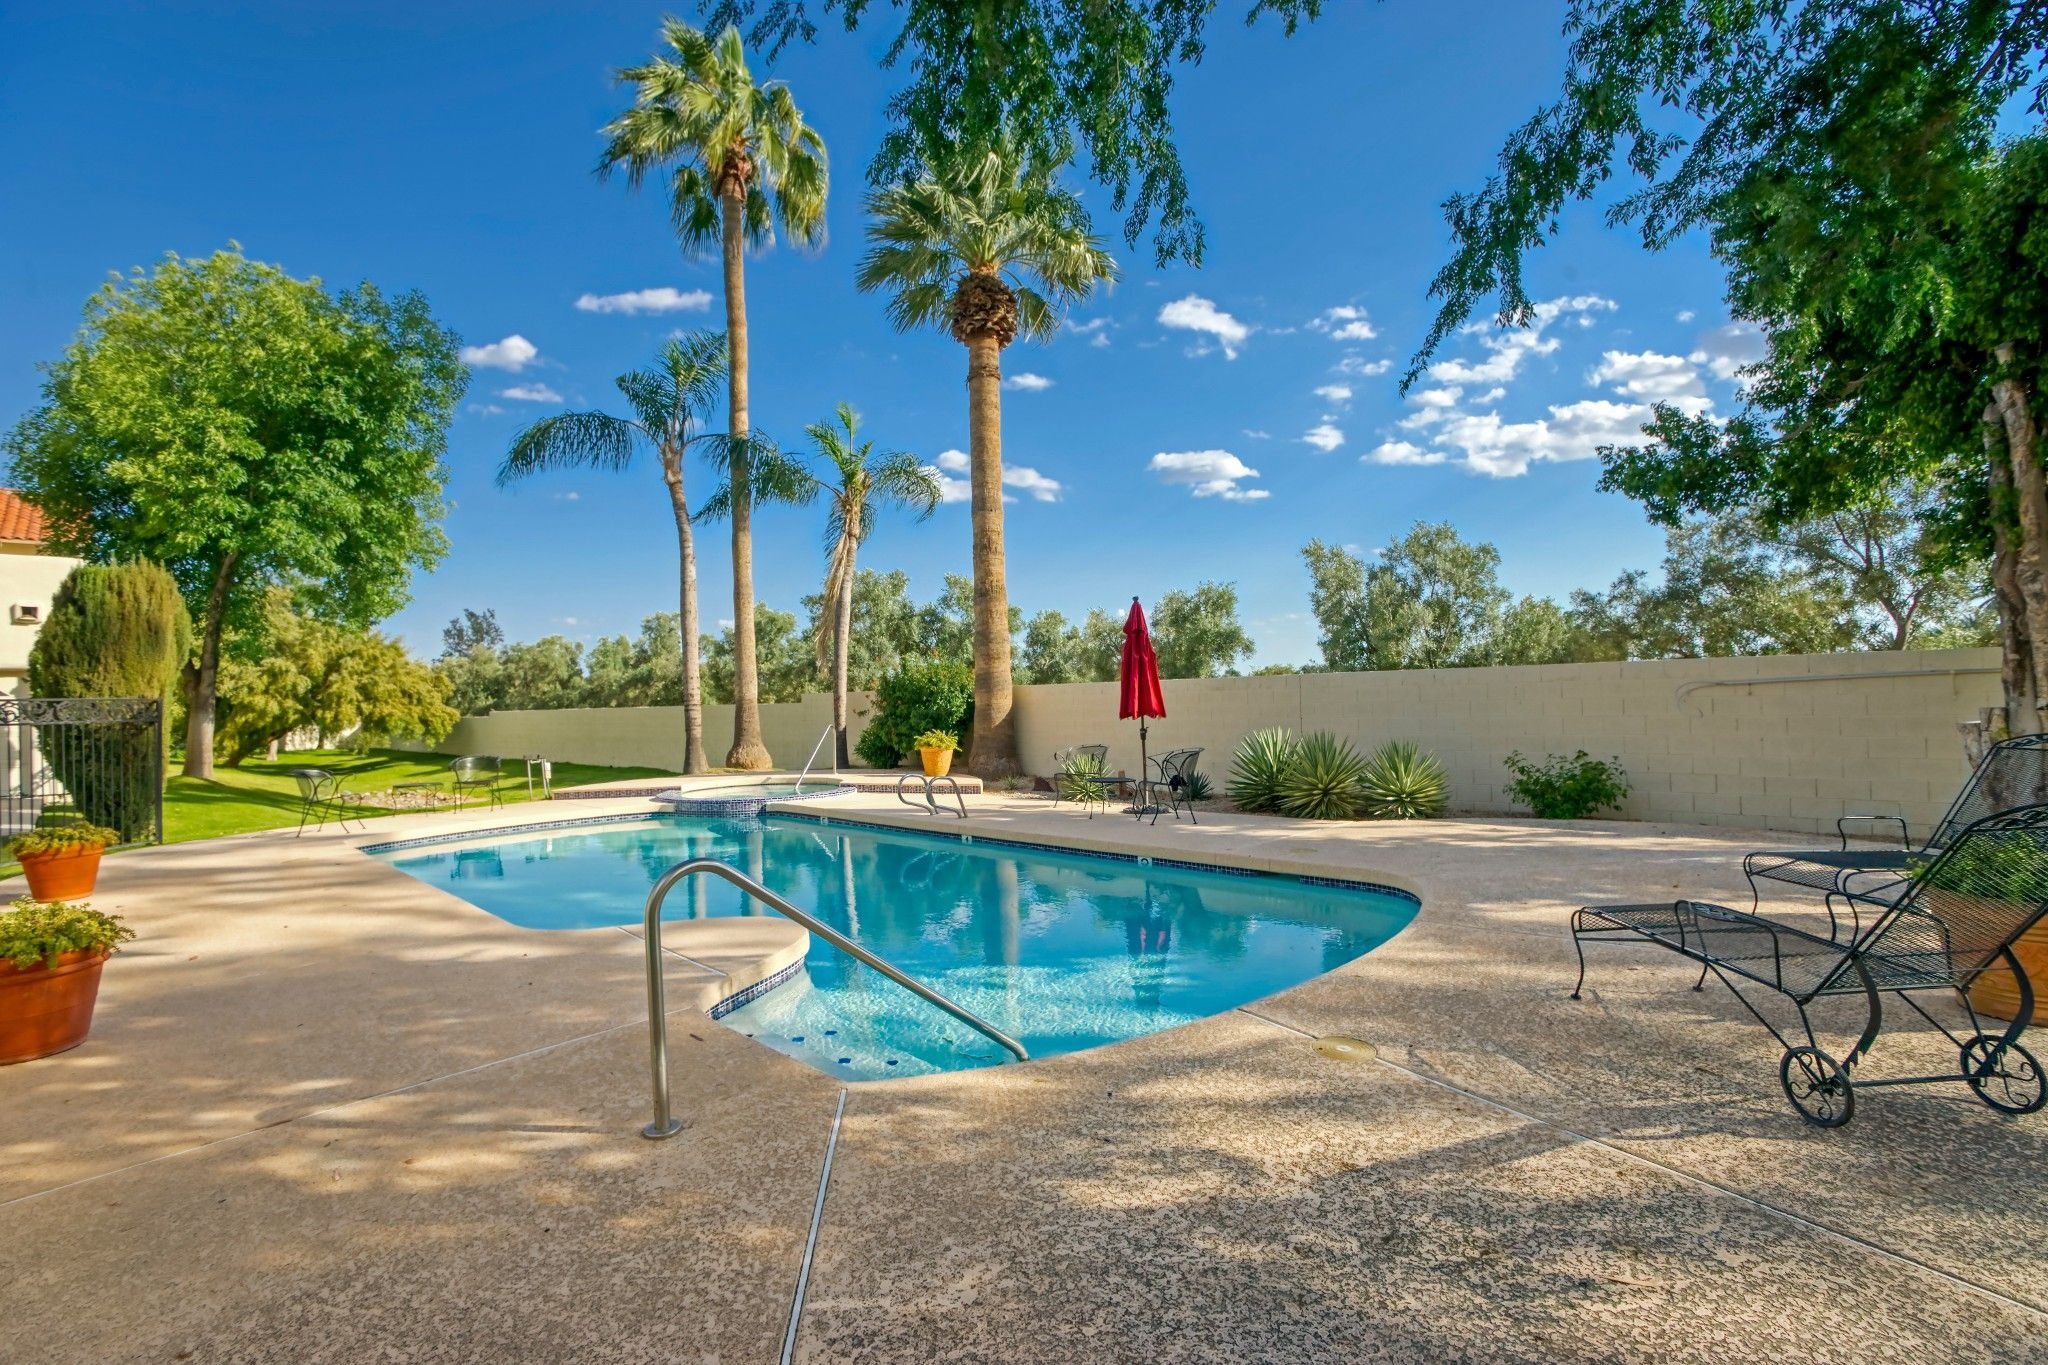 Photo 23: Photos: 4551 N 52nd Place in Phoenix: Arcadia Condo for sale : MLS®# 6246268